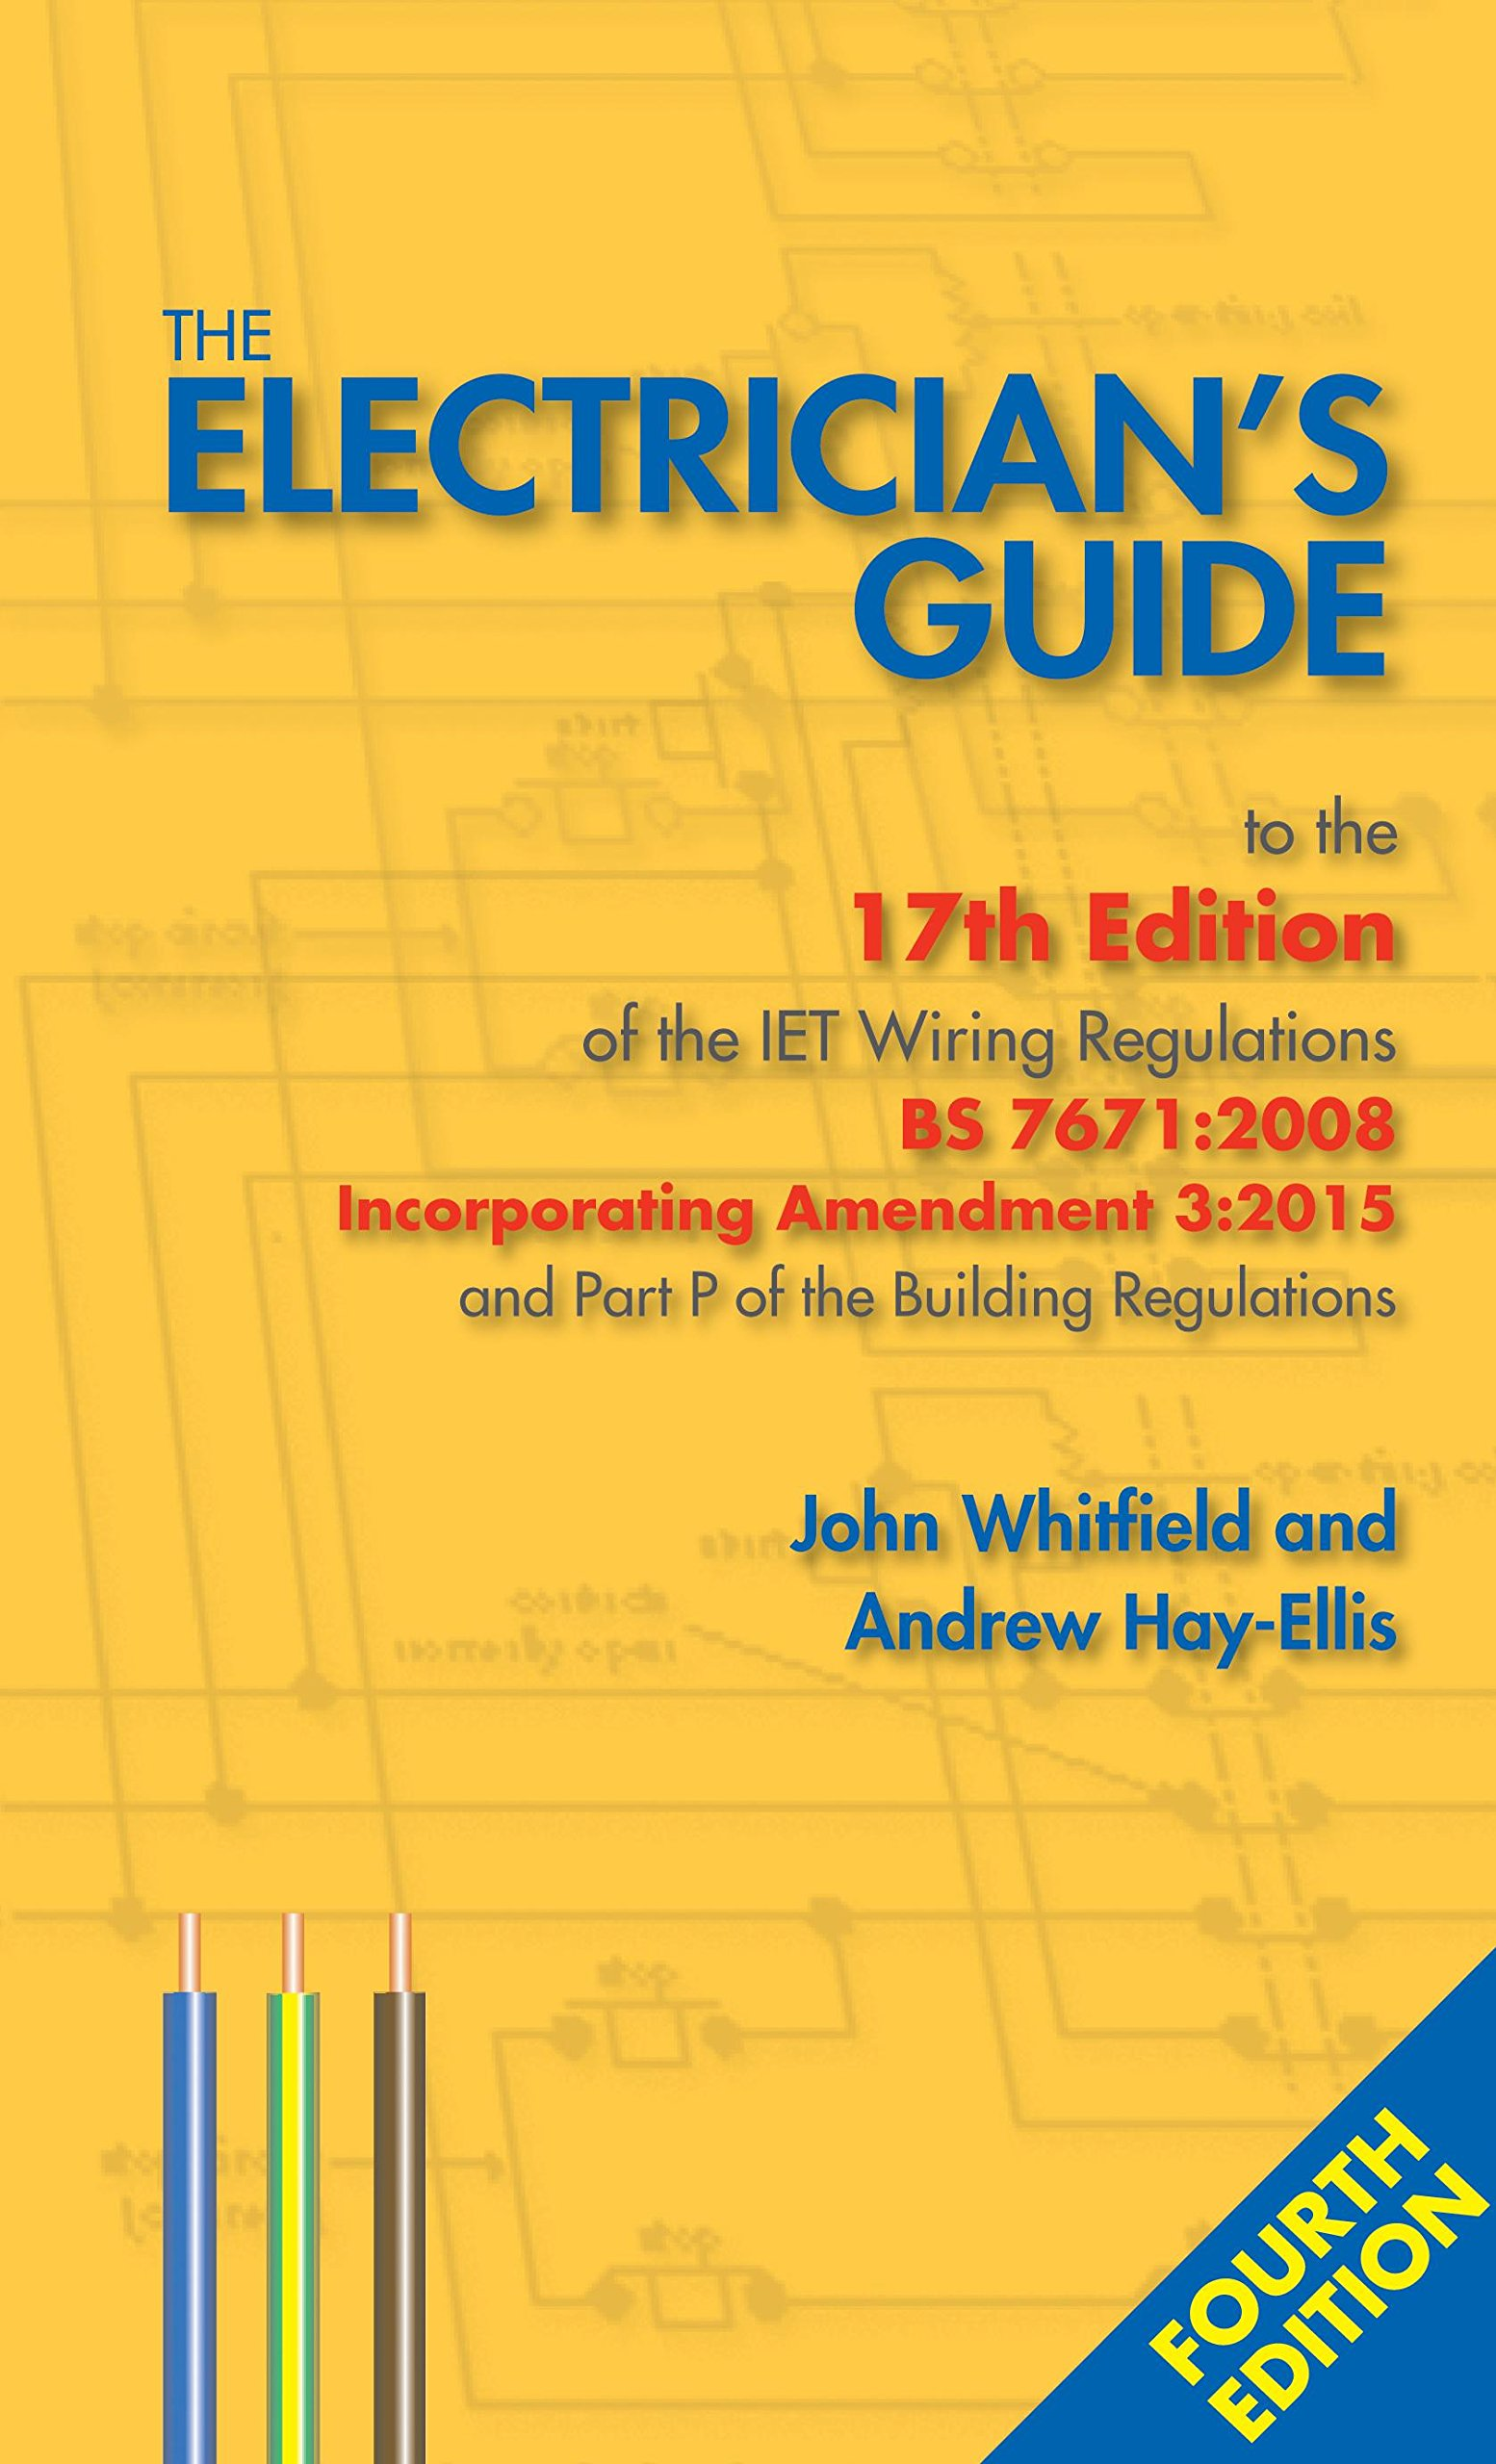 the electrician s guide to the th edition of the iet wiring the electrician s guide to the 17th edition of the iet wiring regulations bs 7671 2008 incorporating amendment 3 2015 and part p of the building